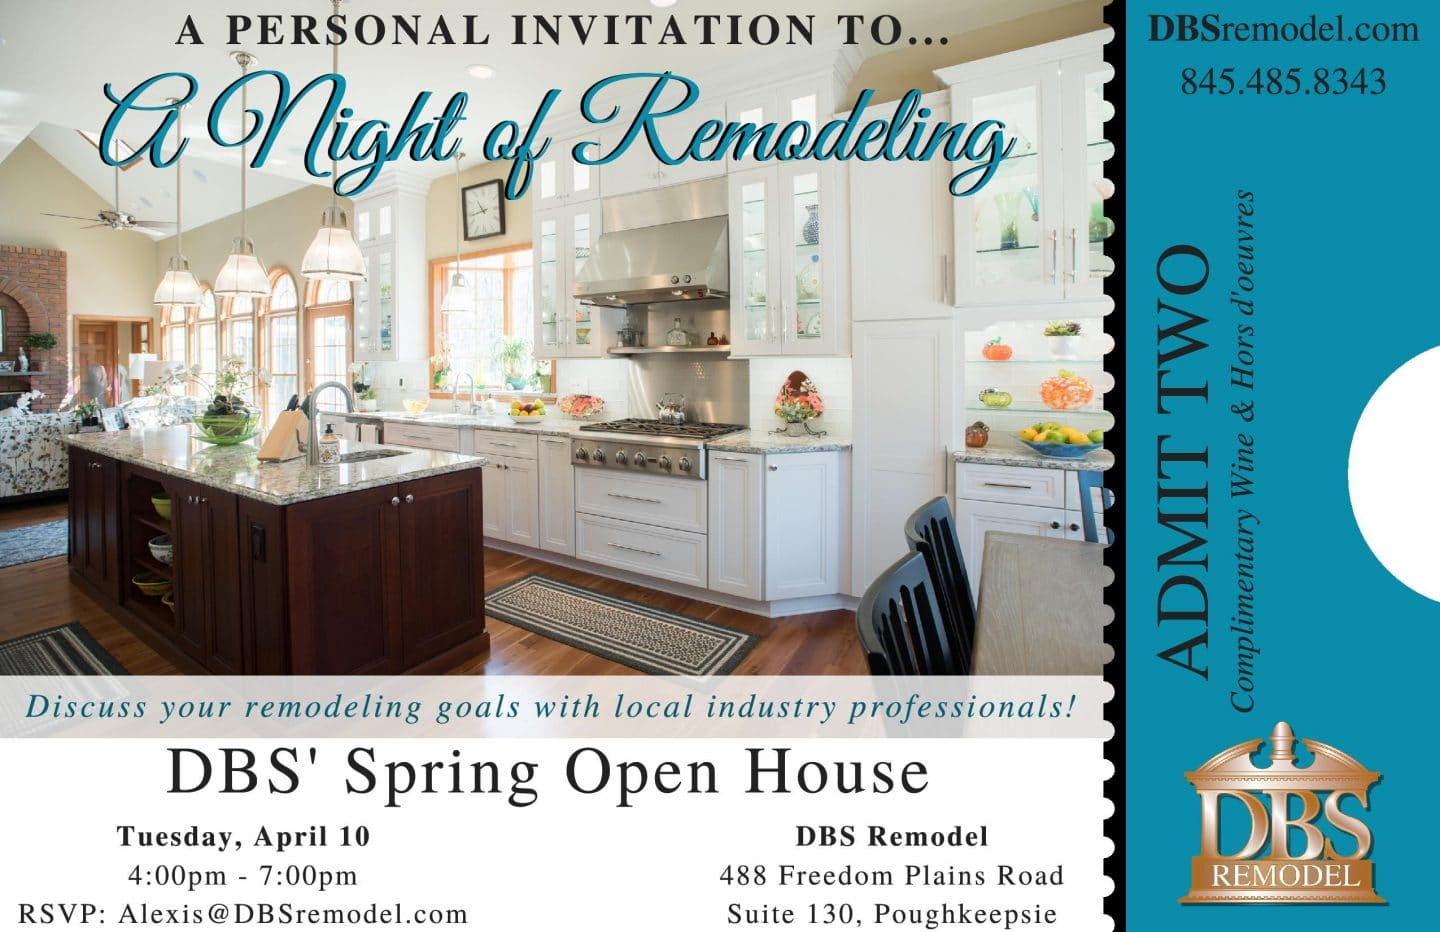 DBS Remodel's Spring Open House